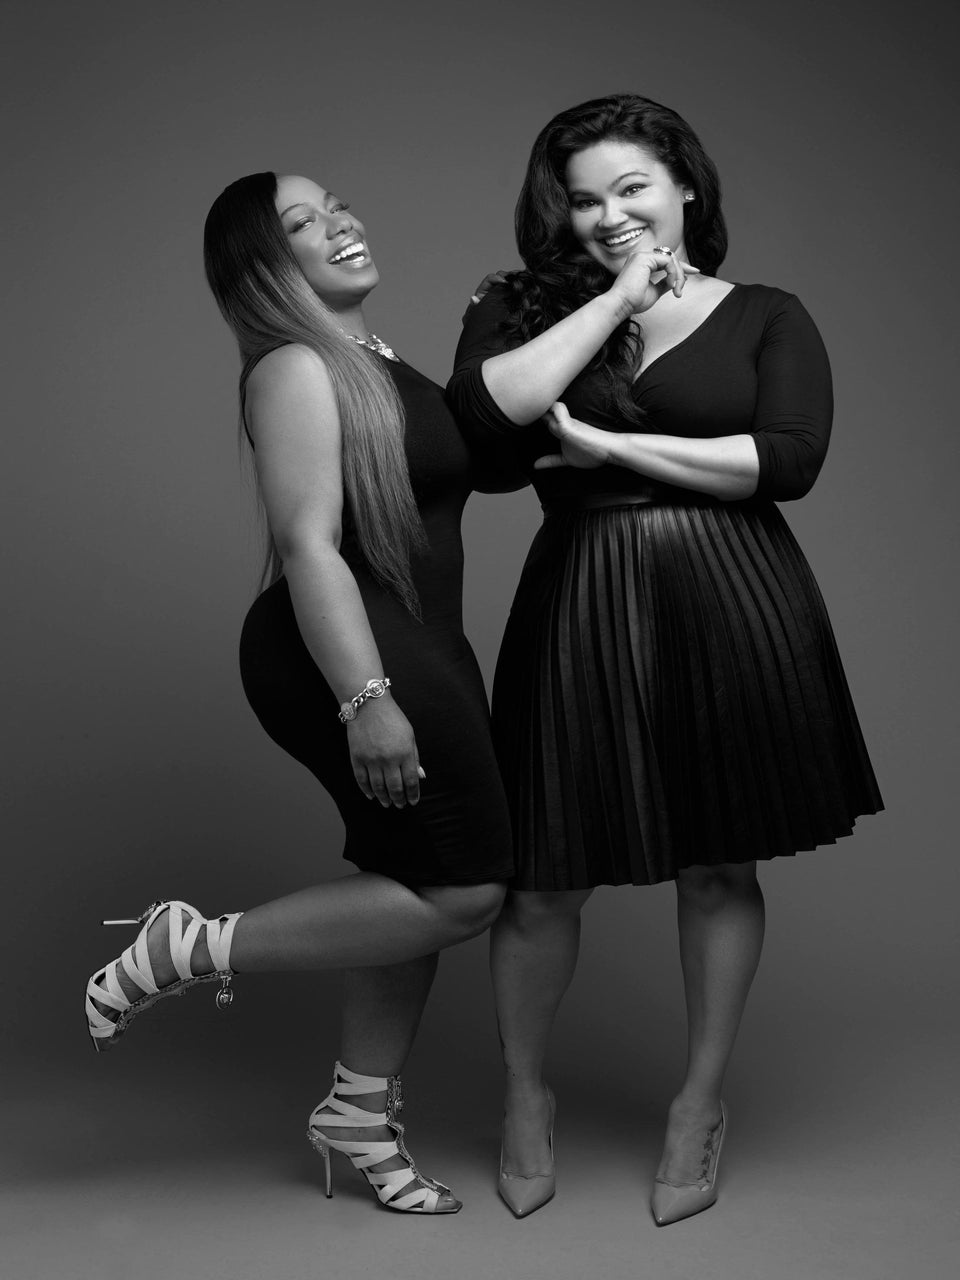 From The Spotlight To Podcast Queens: Liza Morales And Shaniqua TompkinsAre Changing The Stigma Of Celebrity Exes